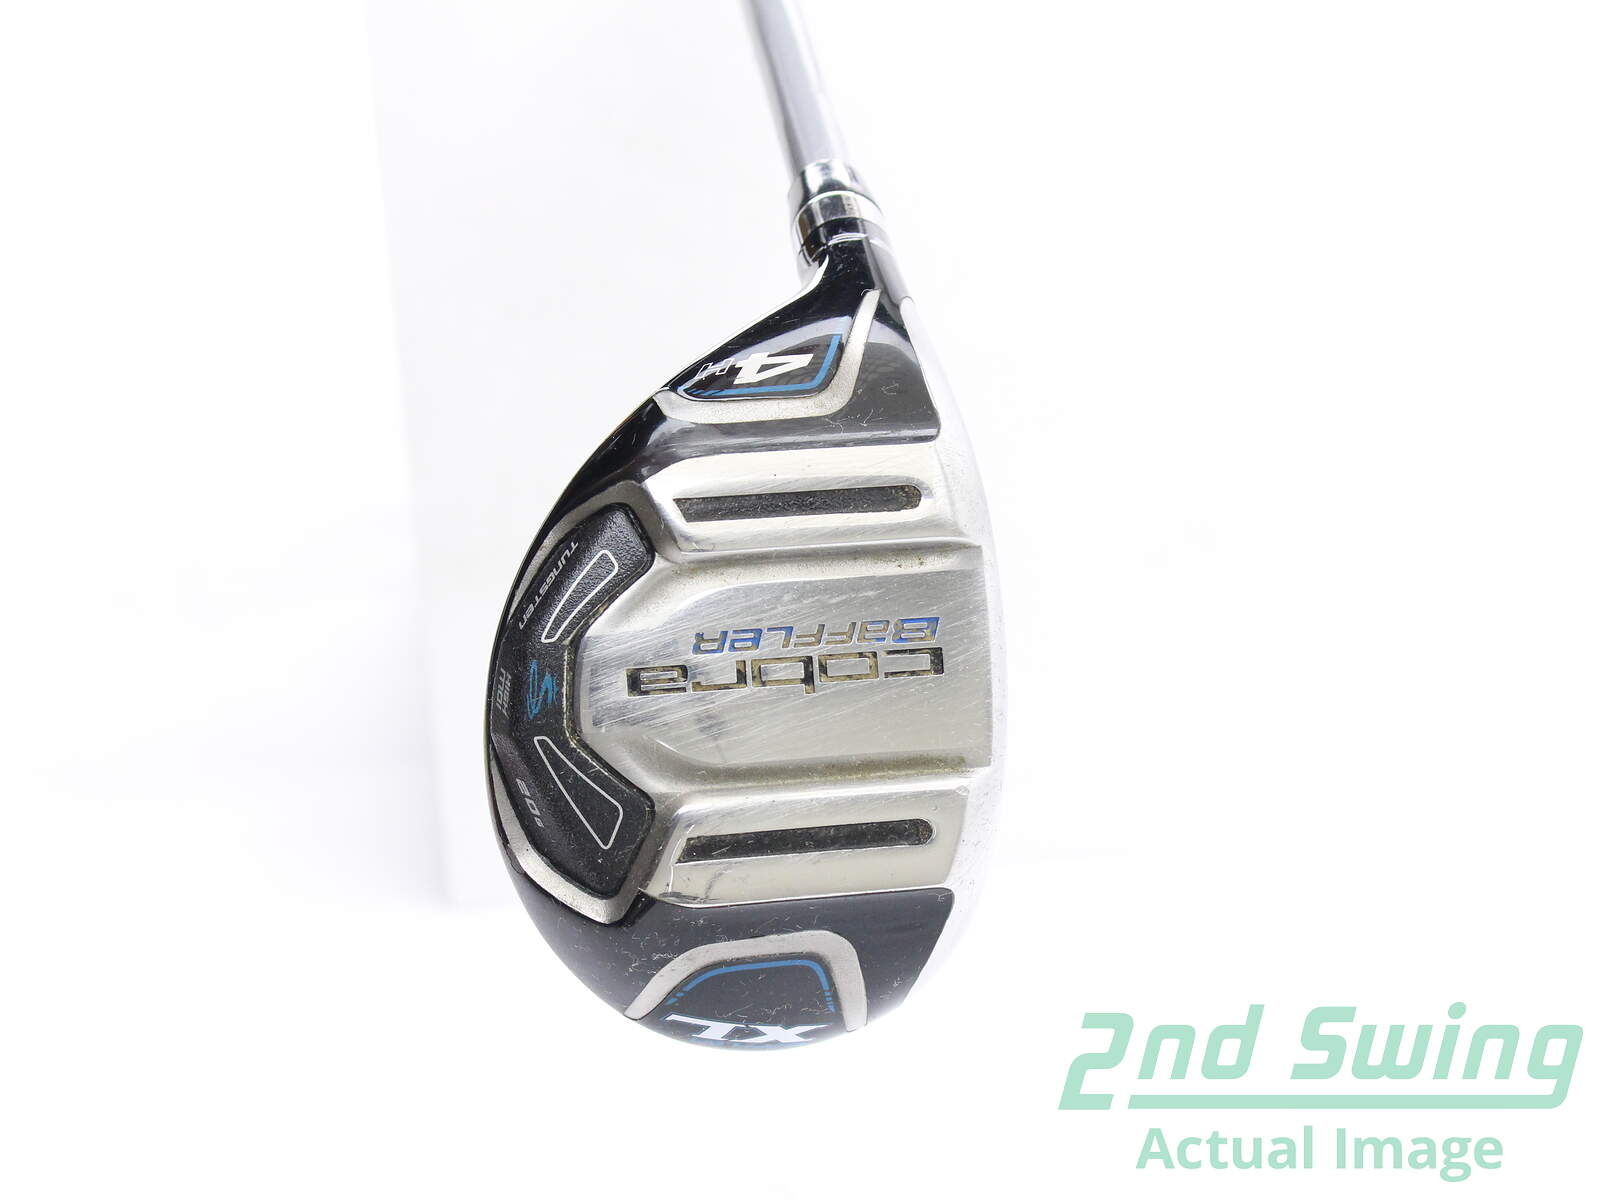 Pv 509878644 Titleist 915 Fd Fairway Wood 3 Wood 135 Mitsubishi Diamana S Blue 70 Graphite Stiff Left Handed 43 In in addition GPS GSM Module Manufacturers Gps Chips 60141848561 furthermore 32348147960 in addition Pv 491277800 Taylormade Aeroburner Driver 12 Matrix Speed Rul Z 50 Graphite Regular Left Handed 455 In in addition Pv 527620867 Taylormade 2008 Burner Fairway Wood 3 Wood 3w 15 Stock Graphite Shaft Graphite Regular Left Handed 43 In. on small gps tracking chips price